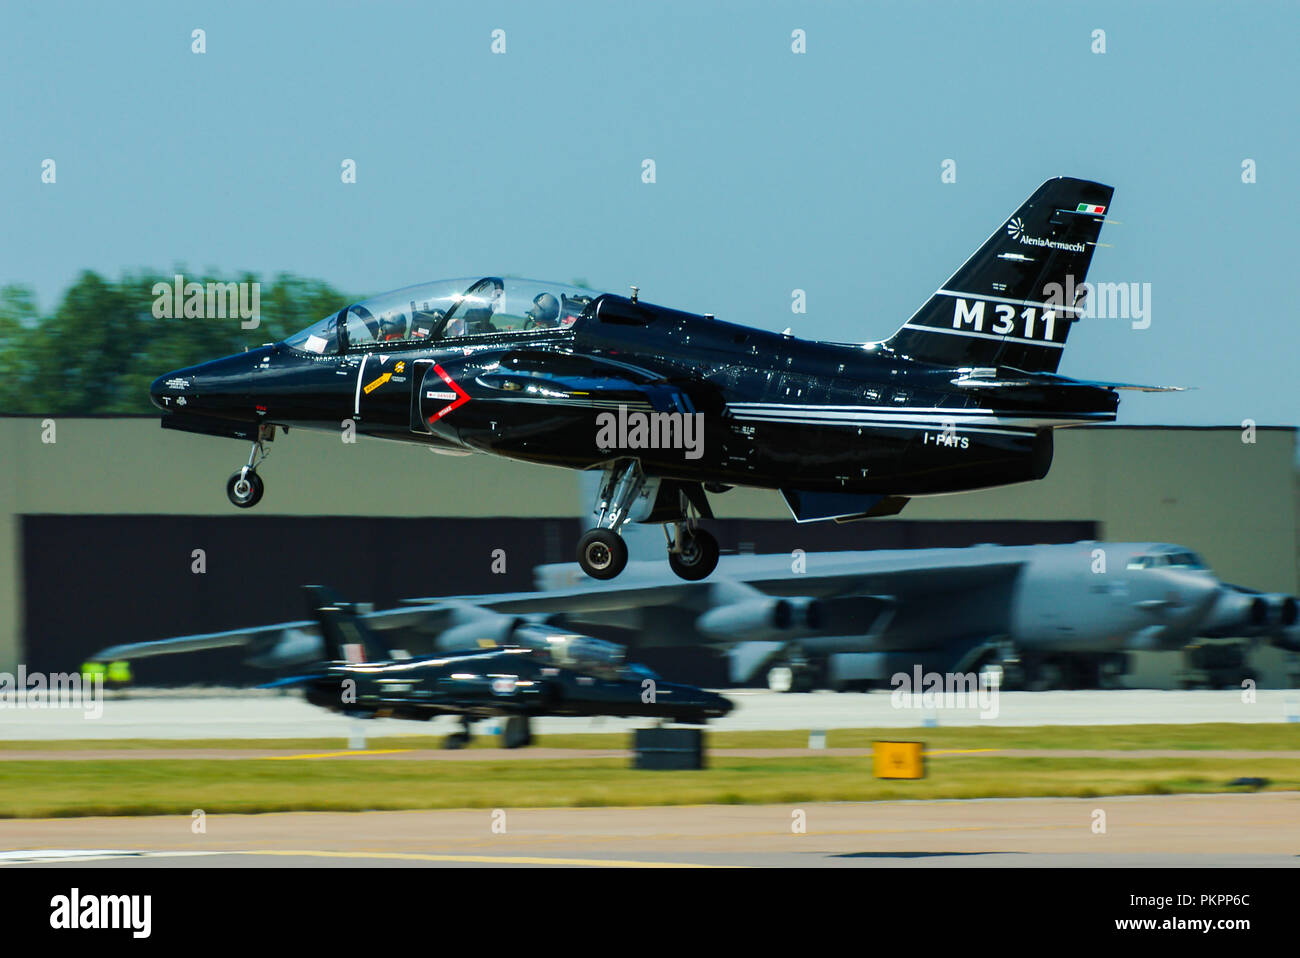 Alenia Aermacchi, subsidiary of Leonardo (formerly Finmeccanica) M311 jet trainer I-PATS. M-311 became M-345. Landing at RAF Fairford with B-52 beyond - Stock Image